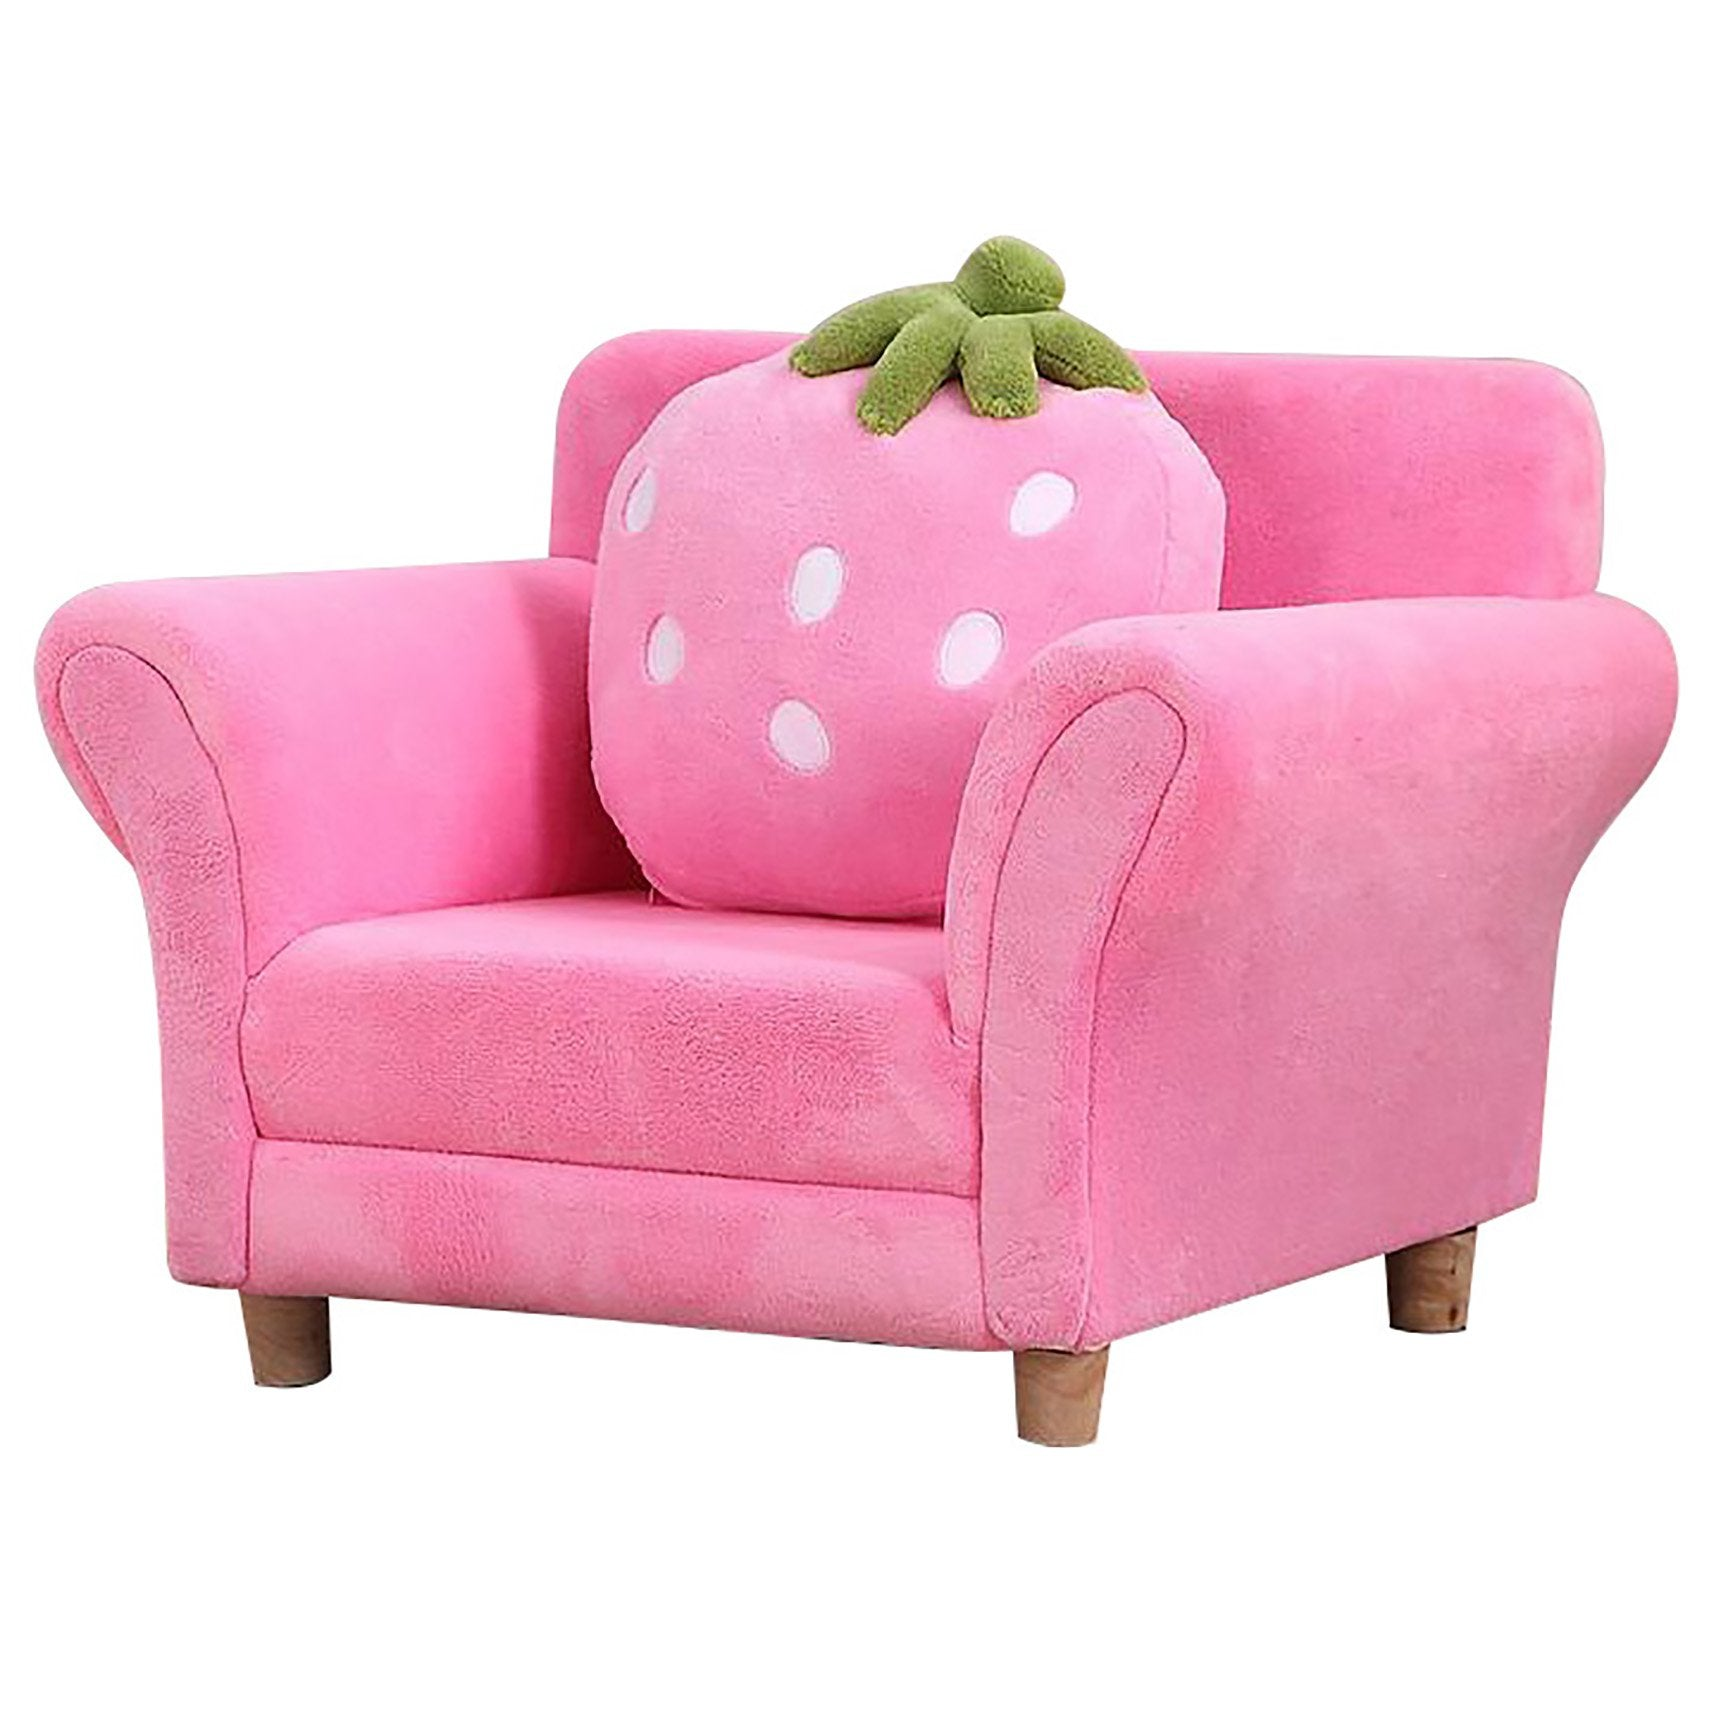 Strawberry Single Sofa, Furniture by Low Cost Gifts